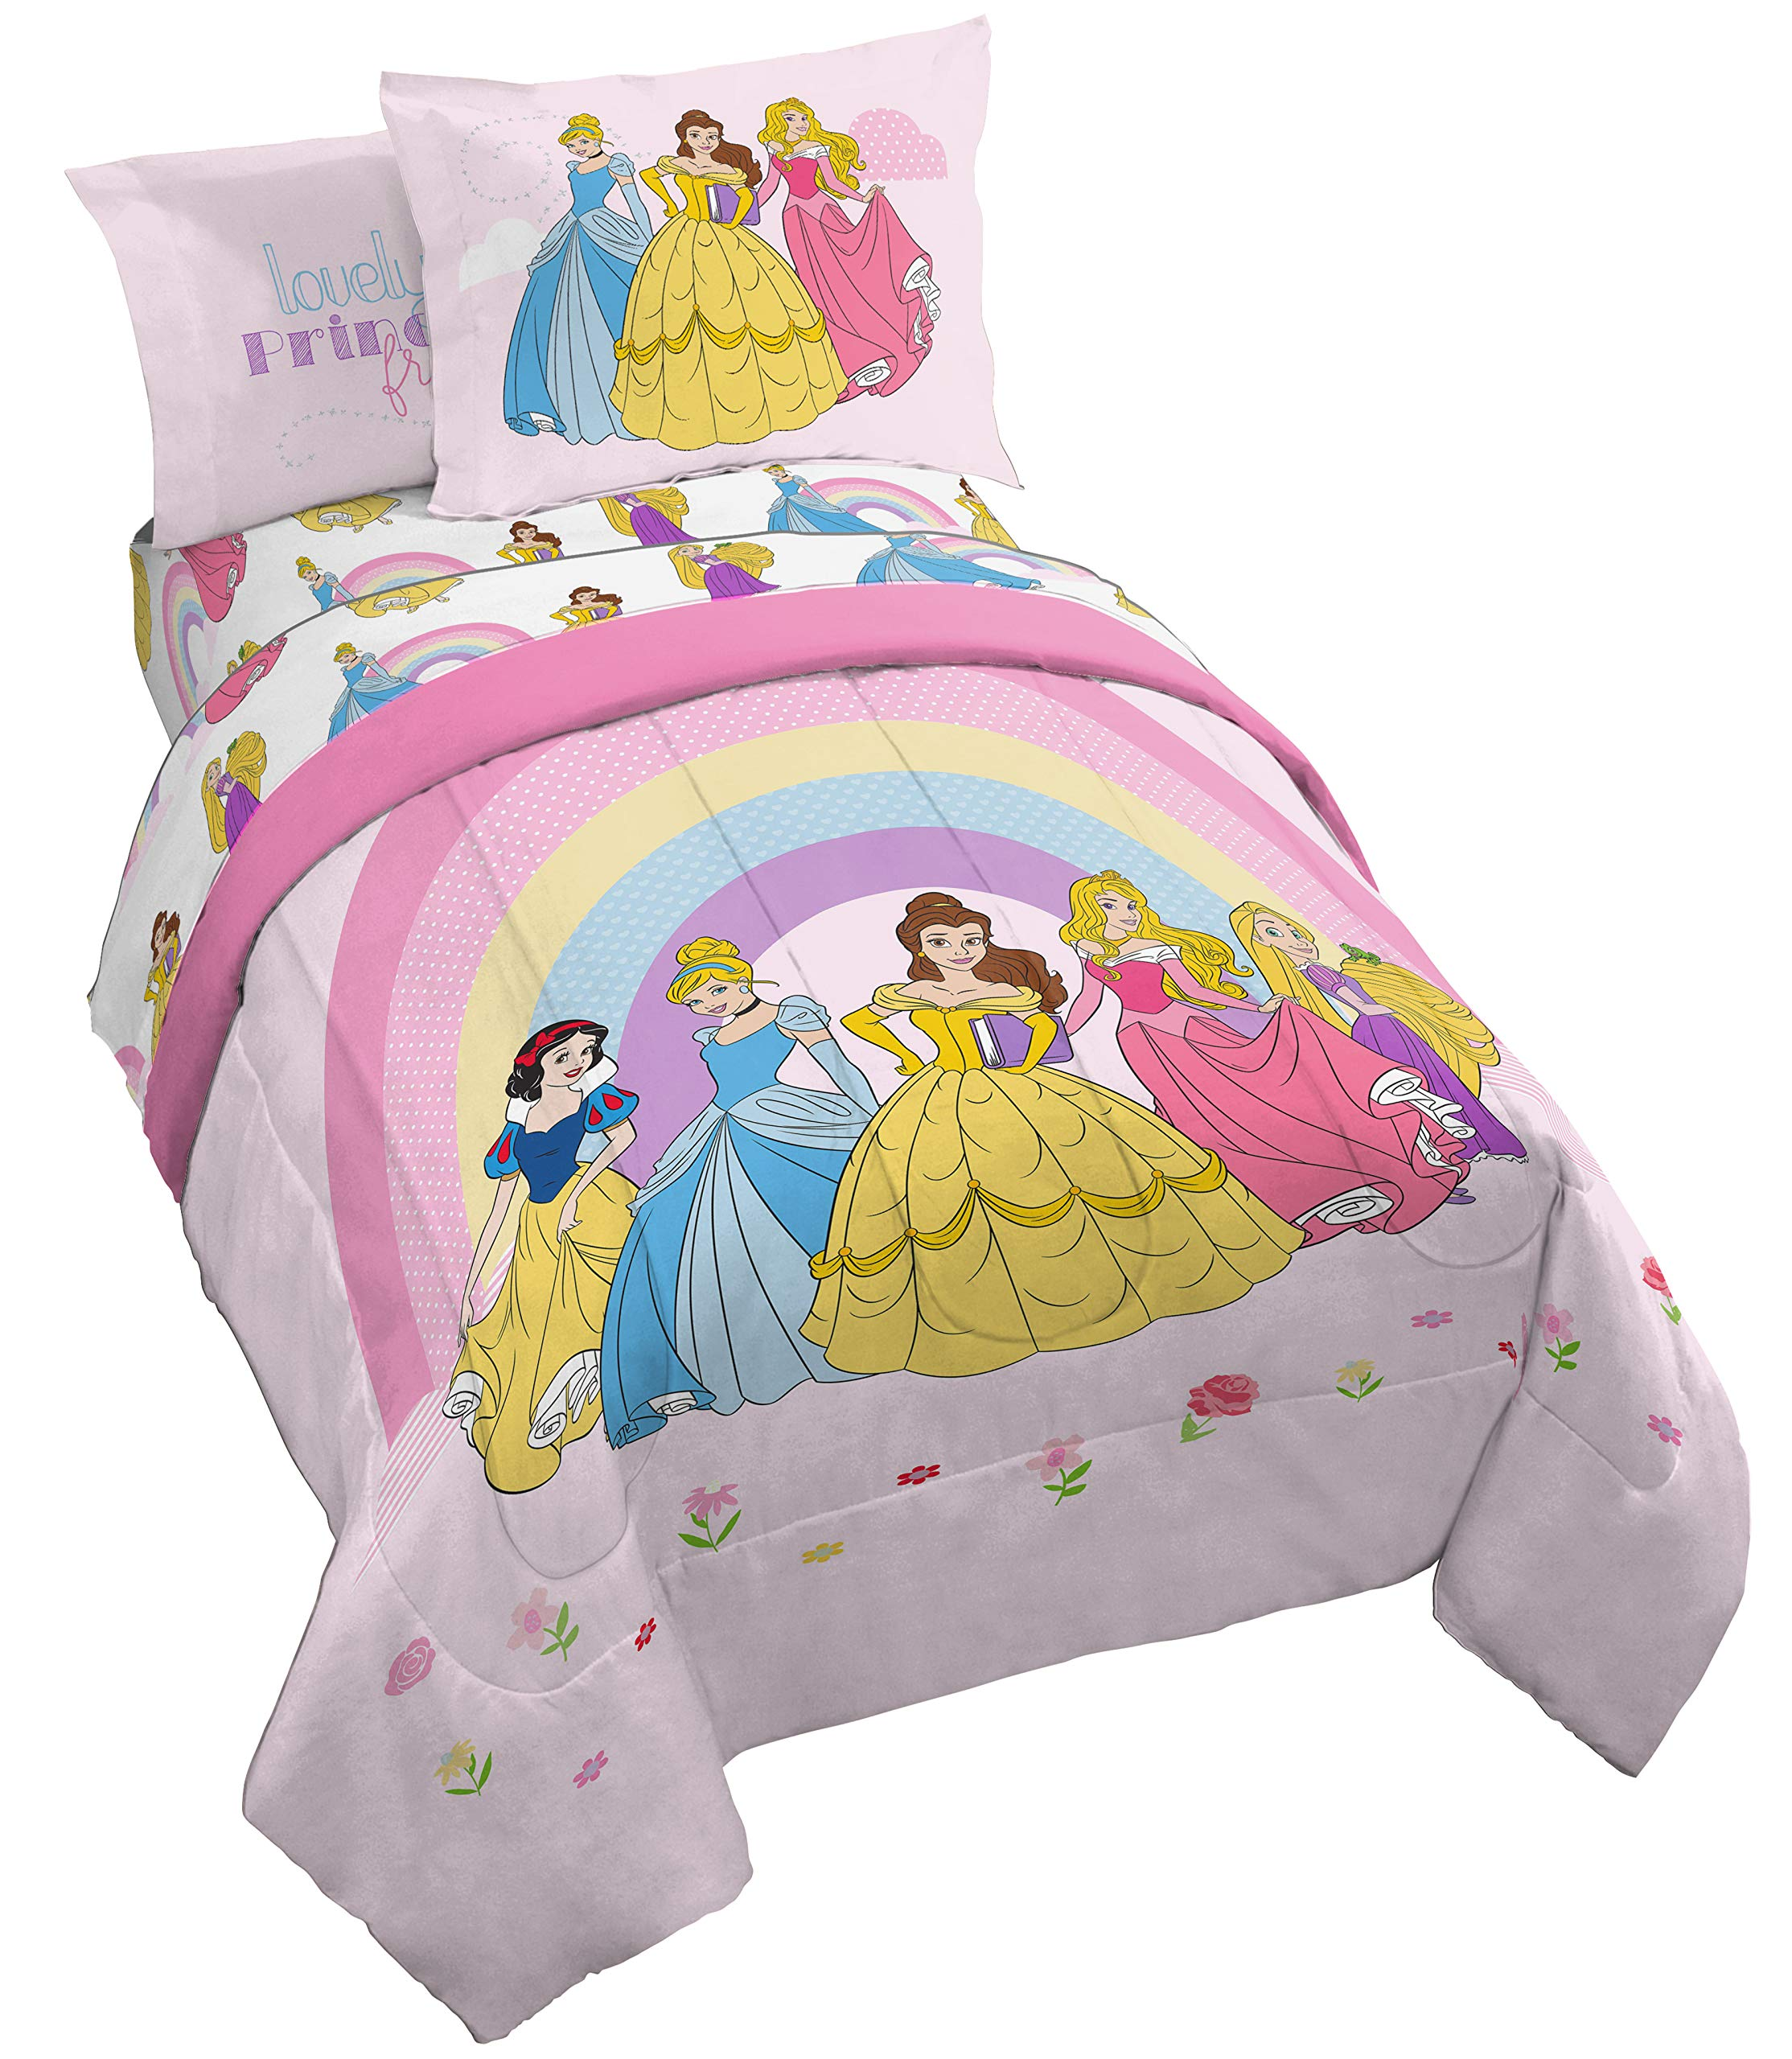 Disney Princess Rainbow 5 Piece Twin Bed Set Includes Comforter Sheet Set Bedding Features Aurora Belle Cinderella Super Soft Fade Resistant Microfiber Official Disney Product Kitchen Dining